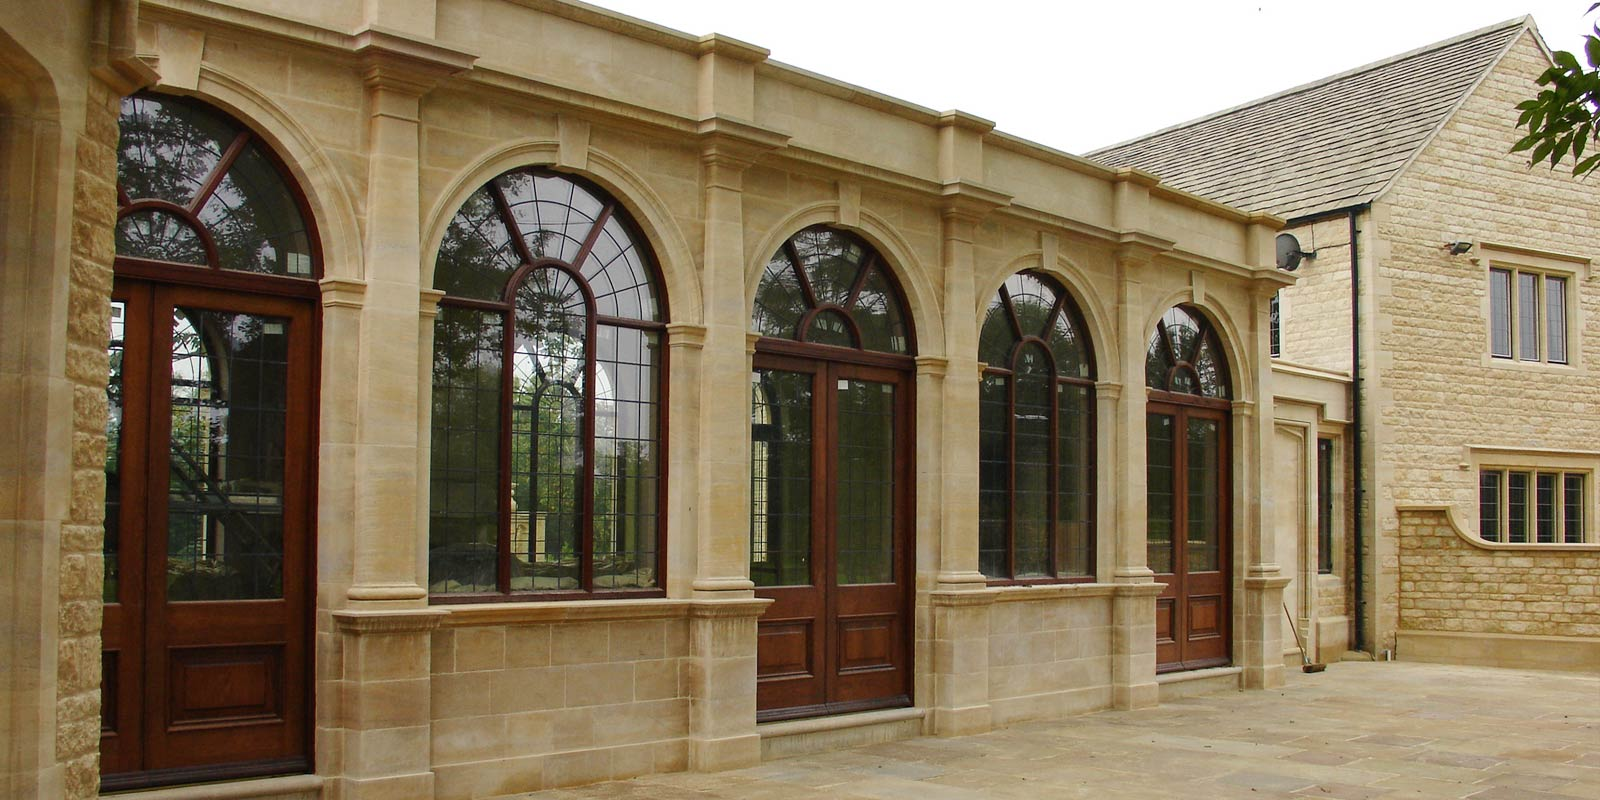 Specialist Stone Designs - High quality stonework and design services